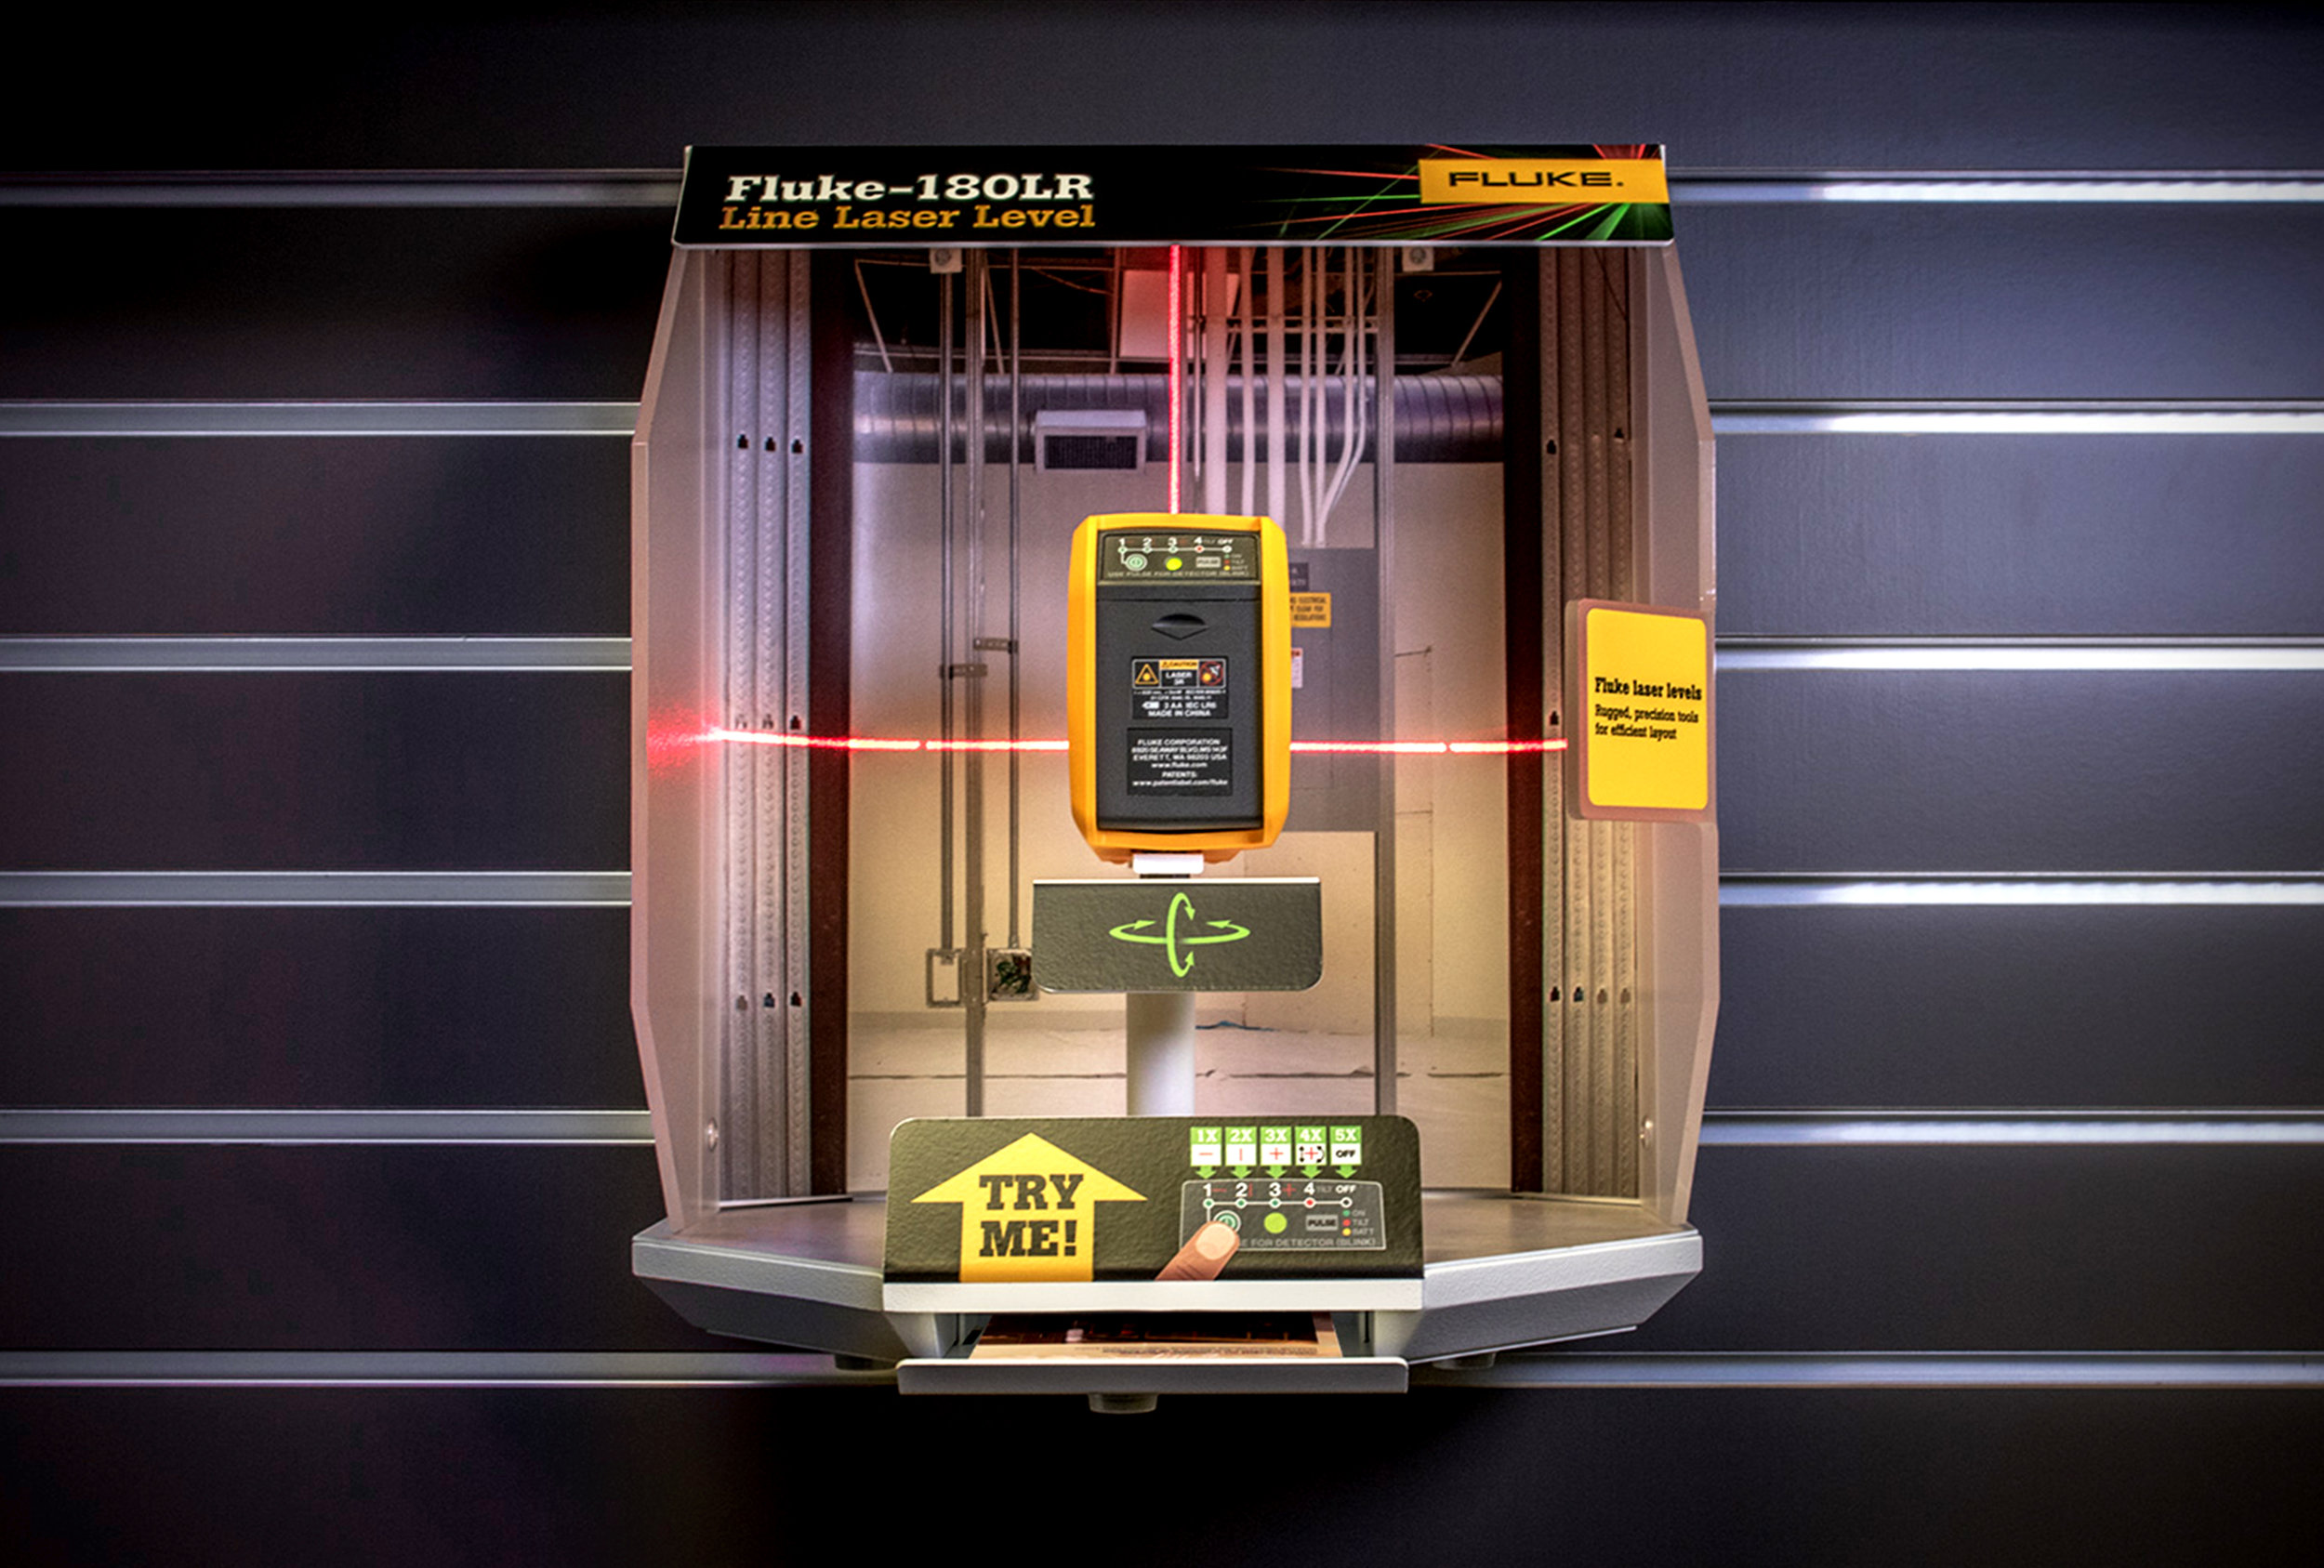 Fluke Corporation asked to ImagiCorps design and fabricate a pop  (Point of Purchase) display for laser level products.